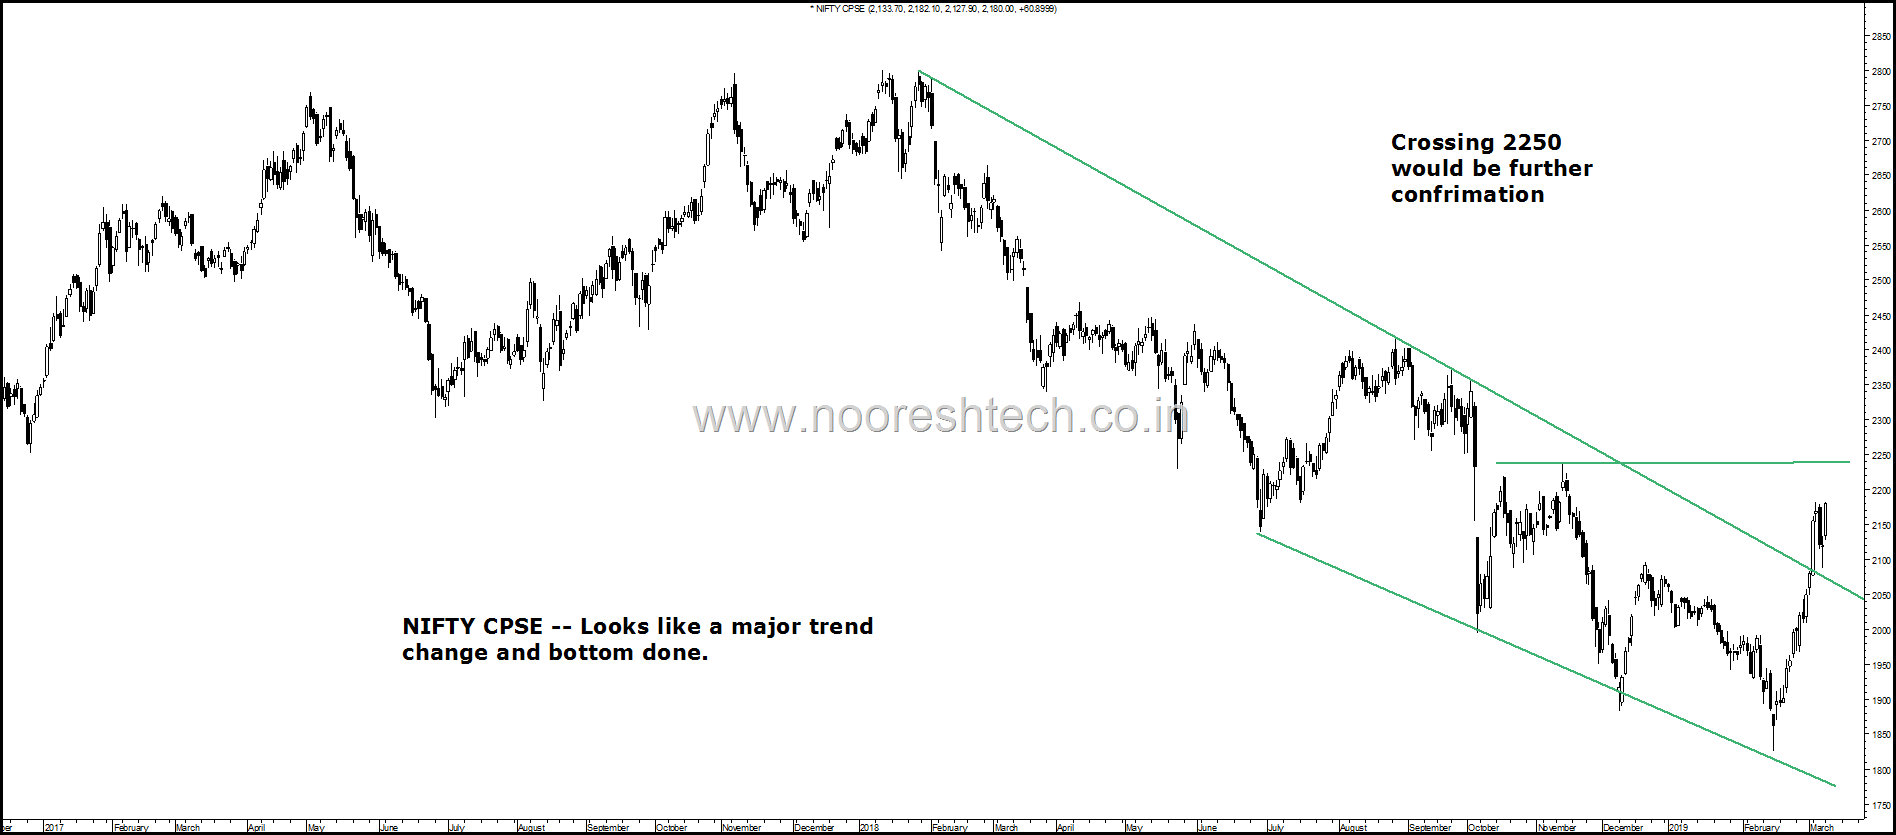 Nifty CPSE trend change